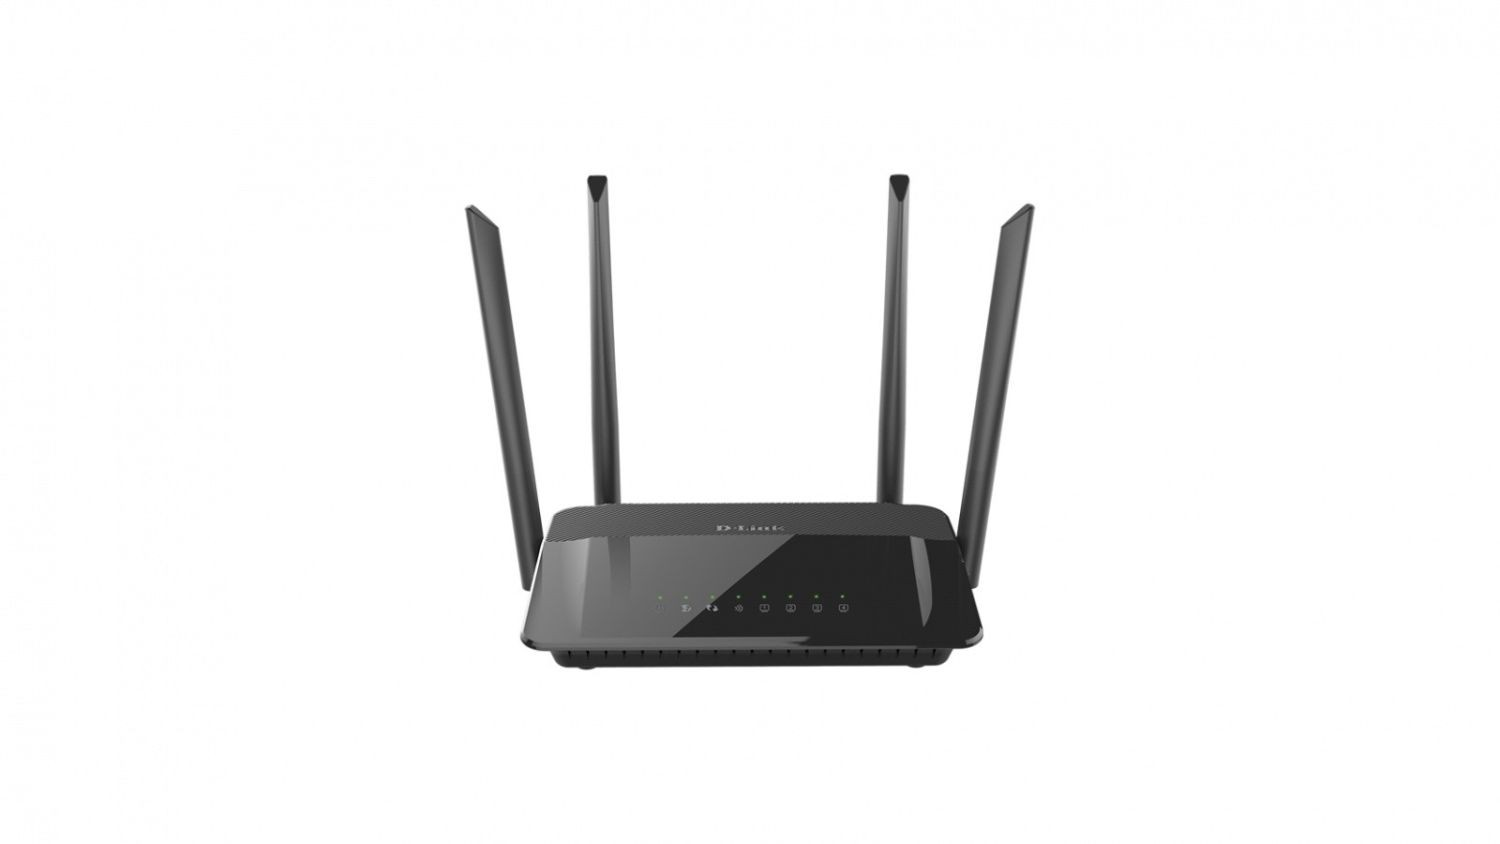 D-Link Wireless AC1200 Dual Band Gigabit Router with external antenna